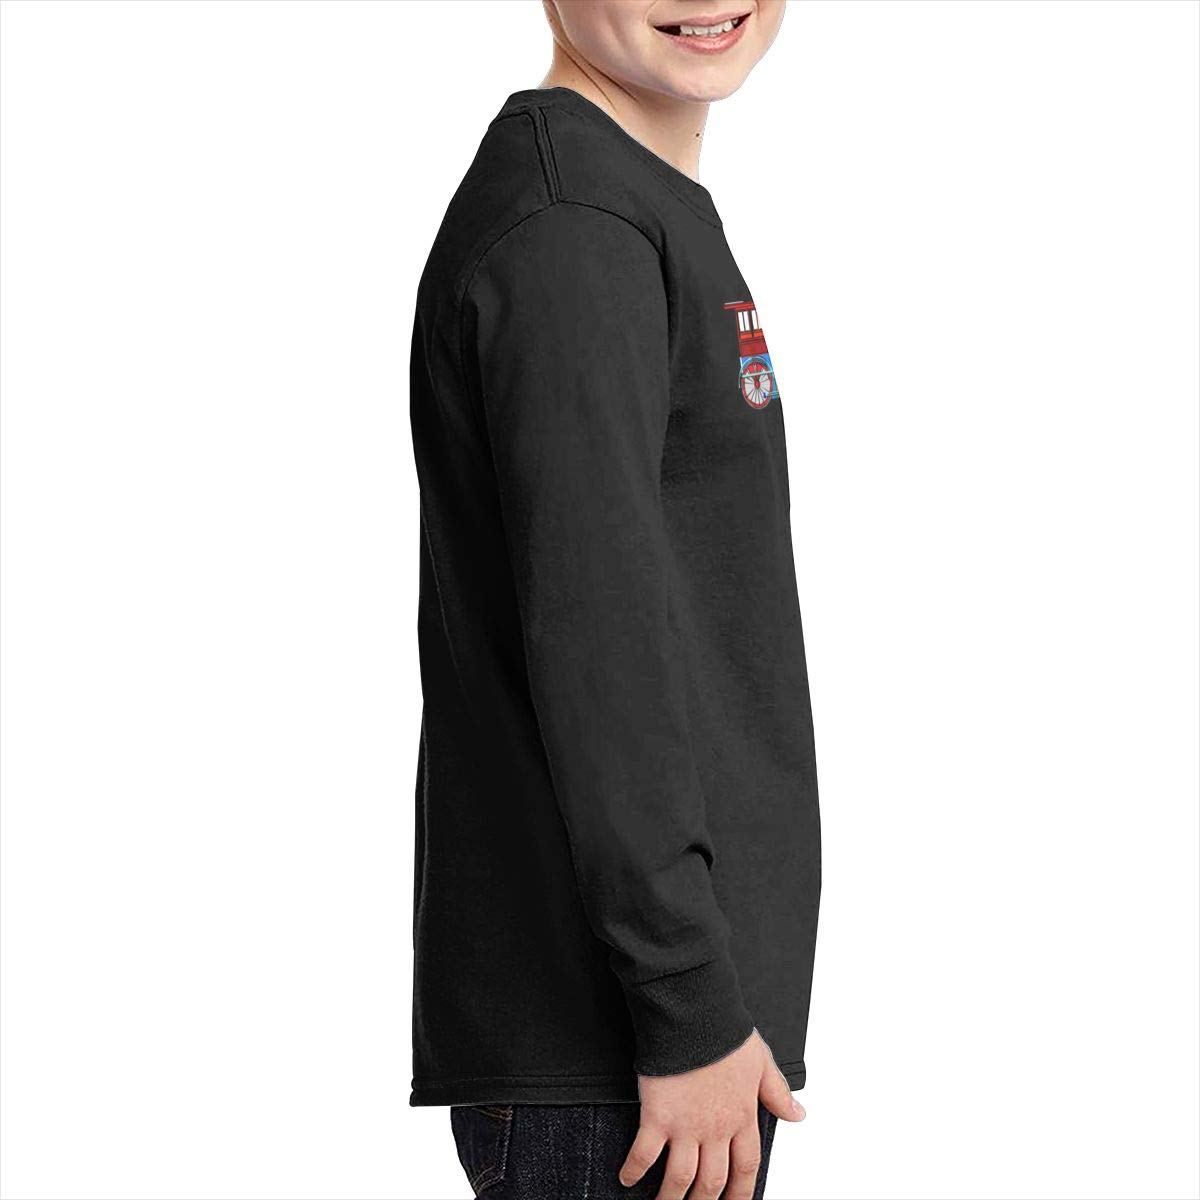 Qiop Nee Blue Red Steam Train Long Sleeves Shirts for Girls